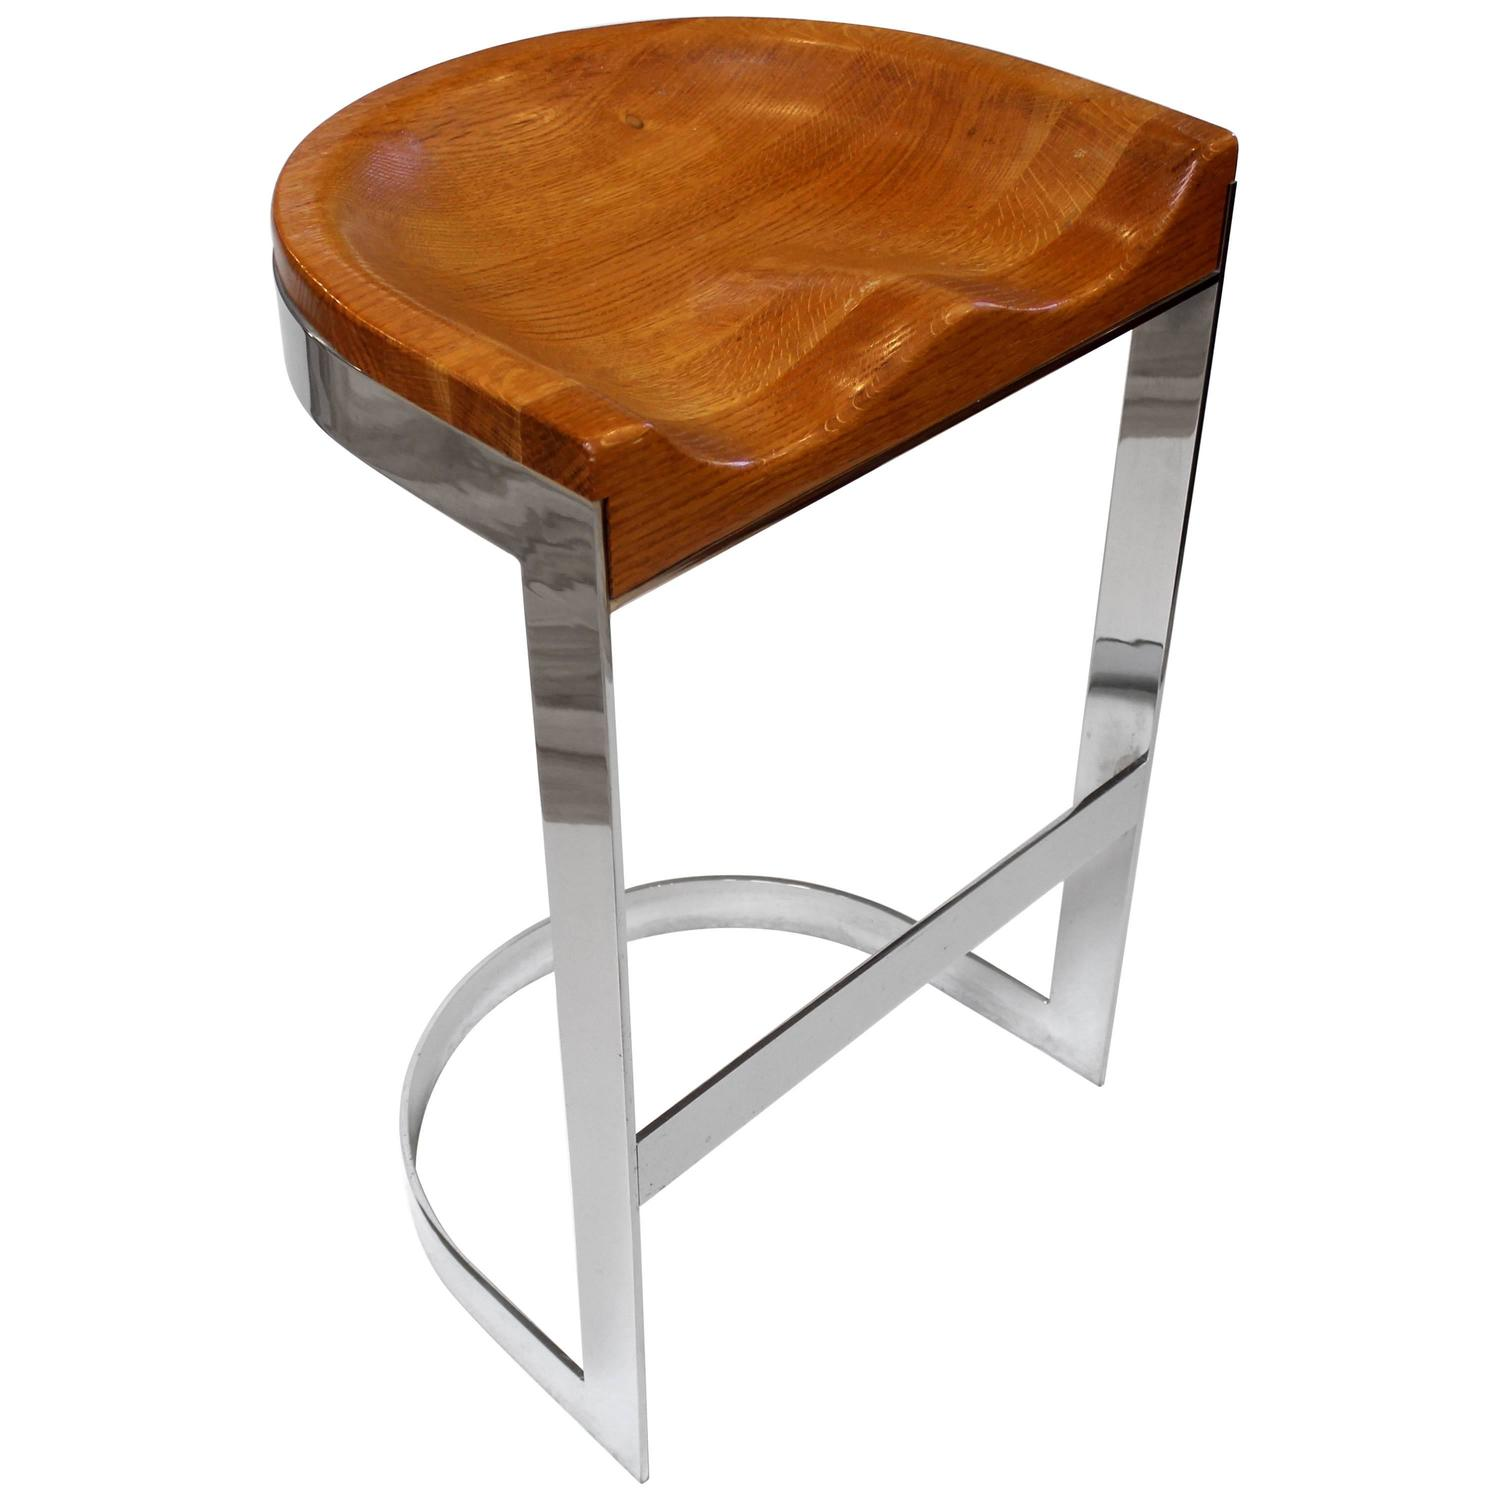 High Quality William Bacon Chrome And Oak Bar Stool, Circa 1970 At 1stdibs